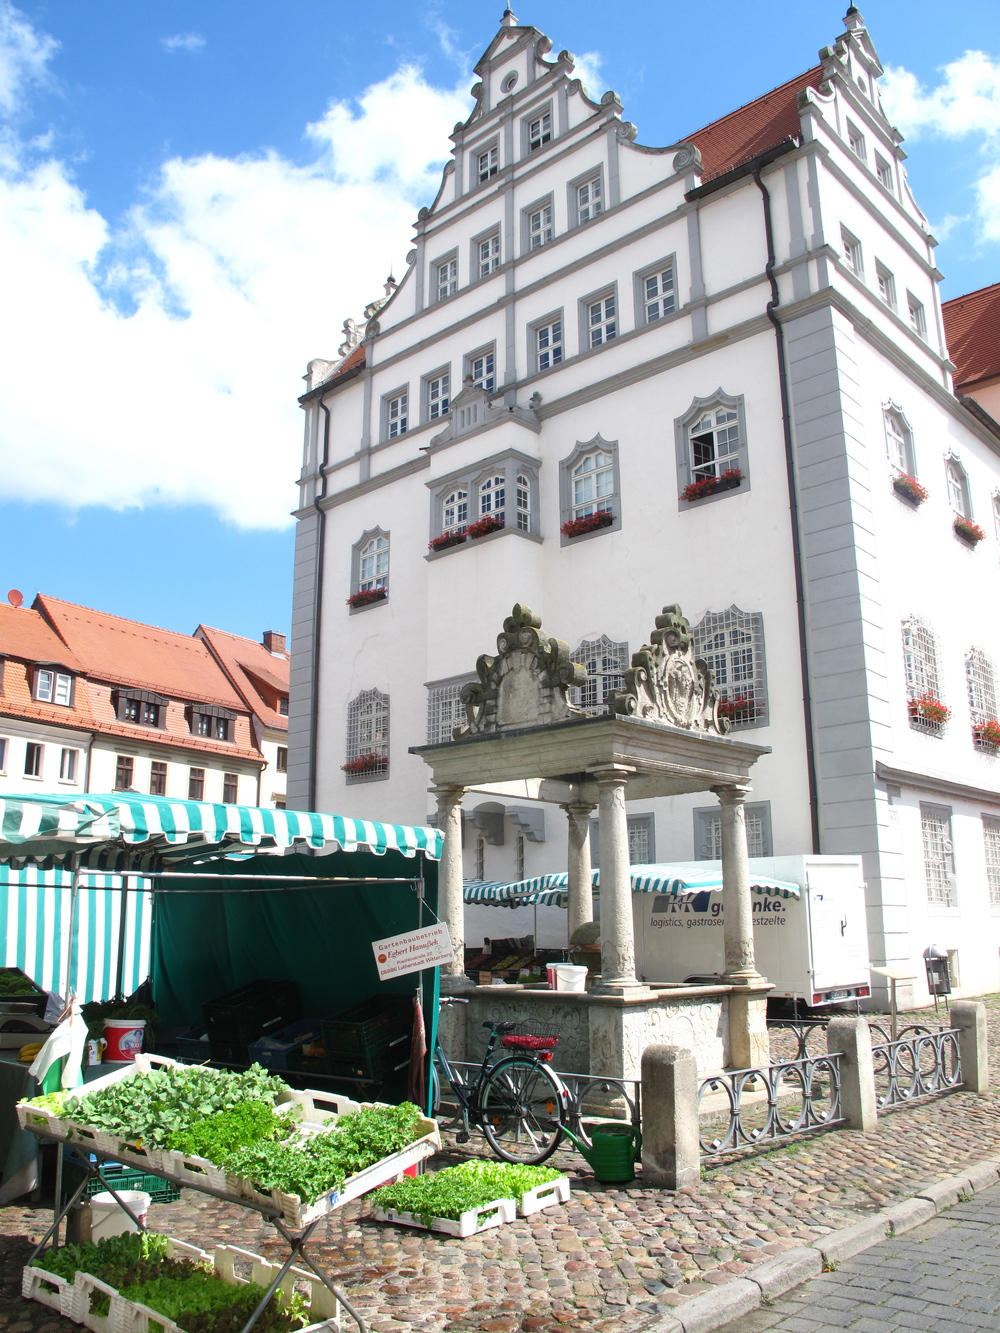 Wittenberg town square, and markets selling fresh produce.